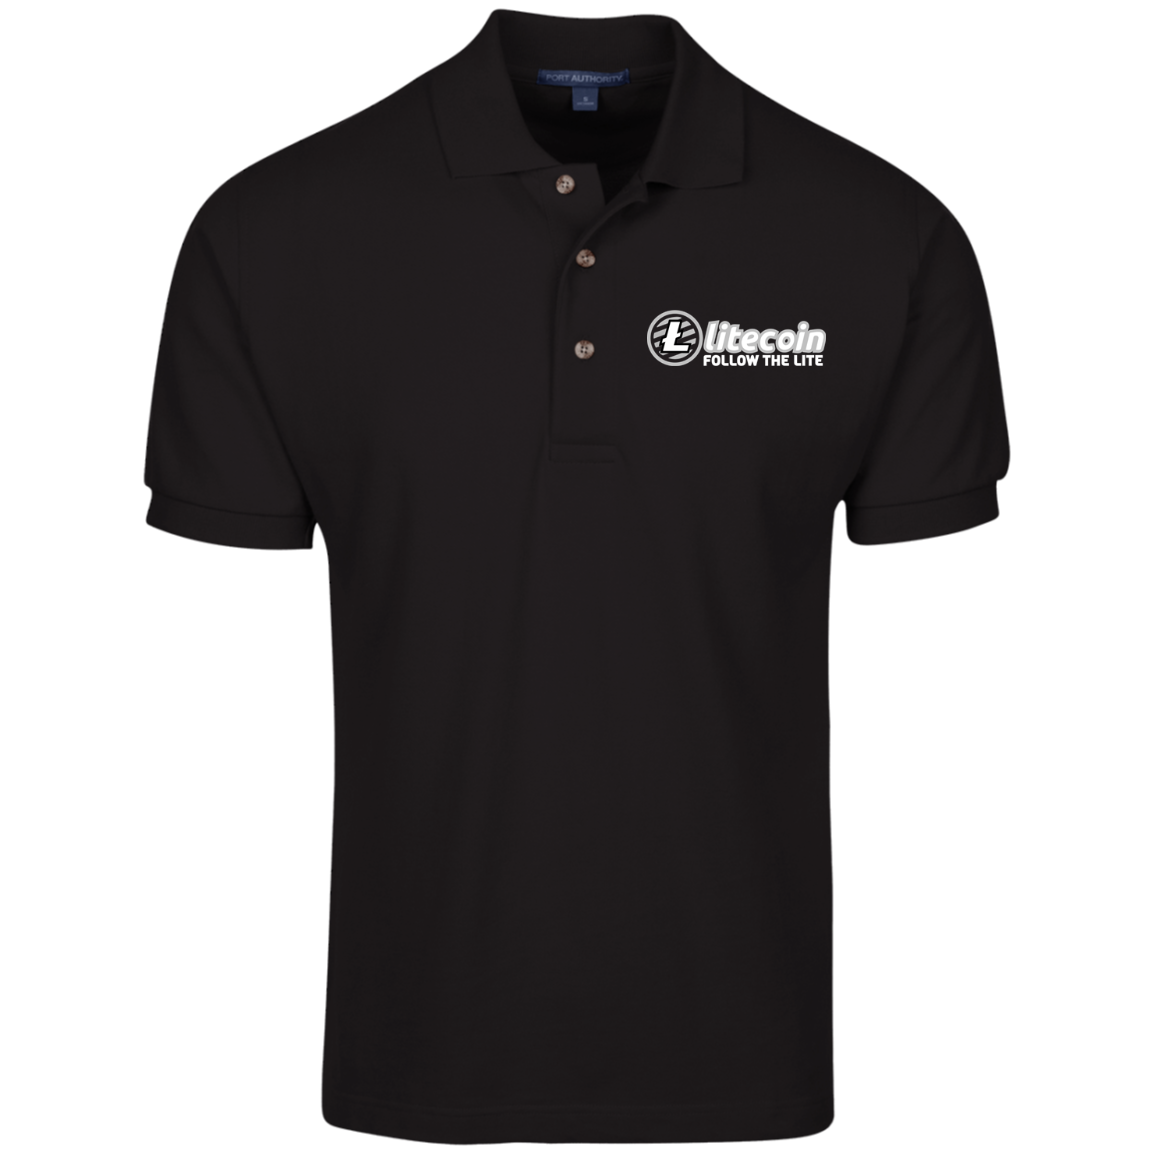 Litecoin Follow The Lite – Embroidered Cotton Polo by Port Authority (Dark)